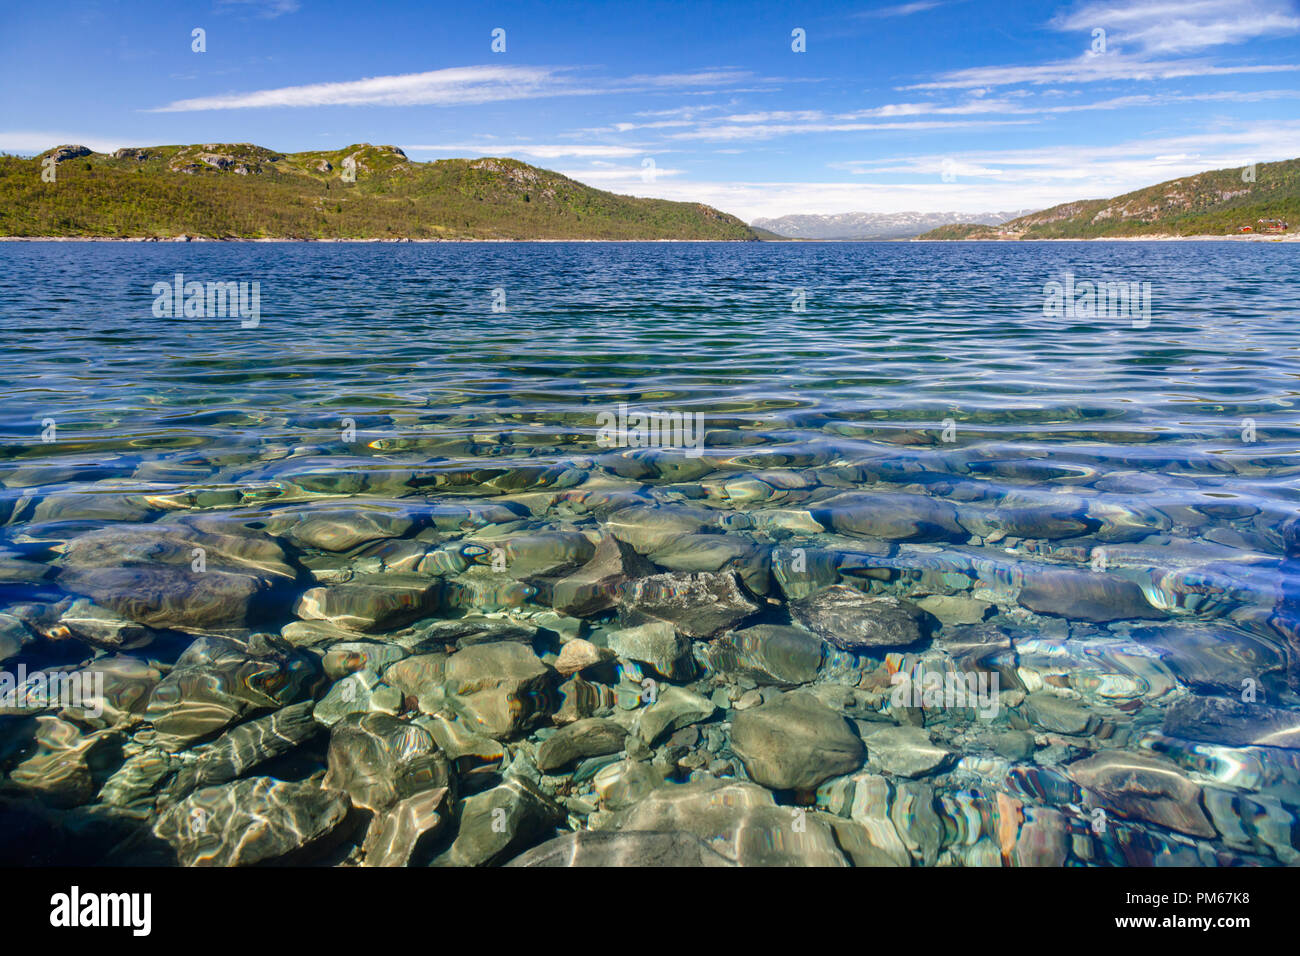 Crystal clear water of Lake Mosvatn (Mosvann) in Telemark County, Norway - Stock Image